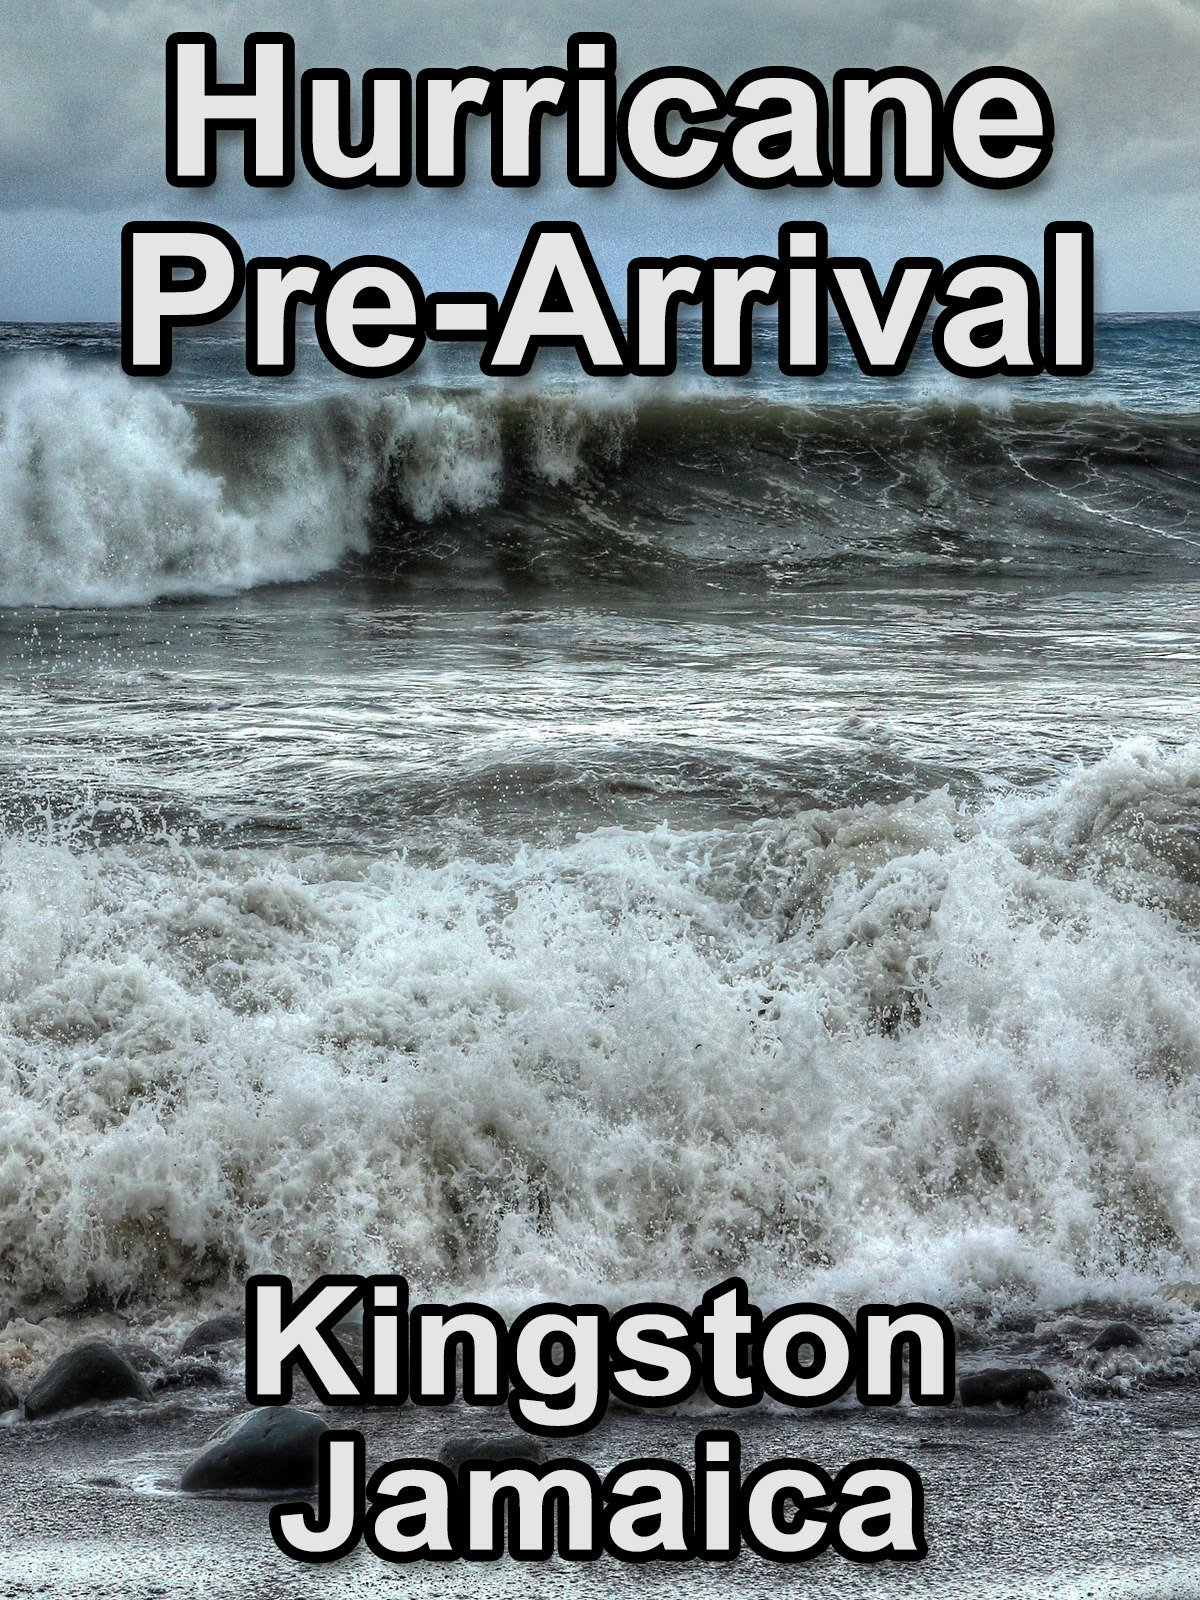 Clip: Hurricane Pre-Arrival Kingston Jamaica